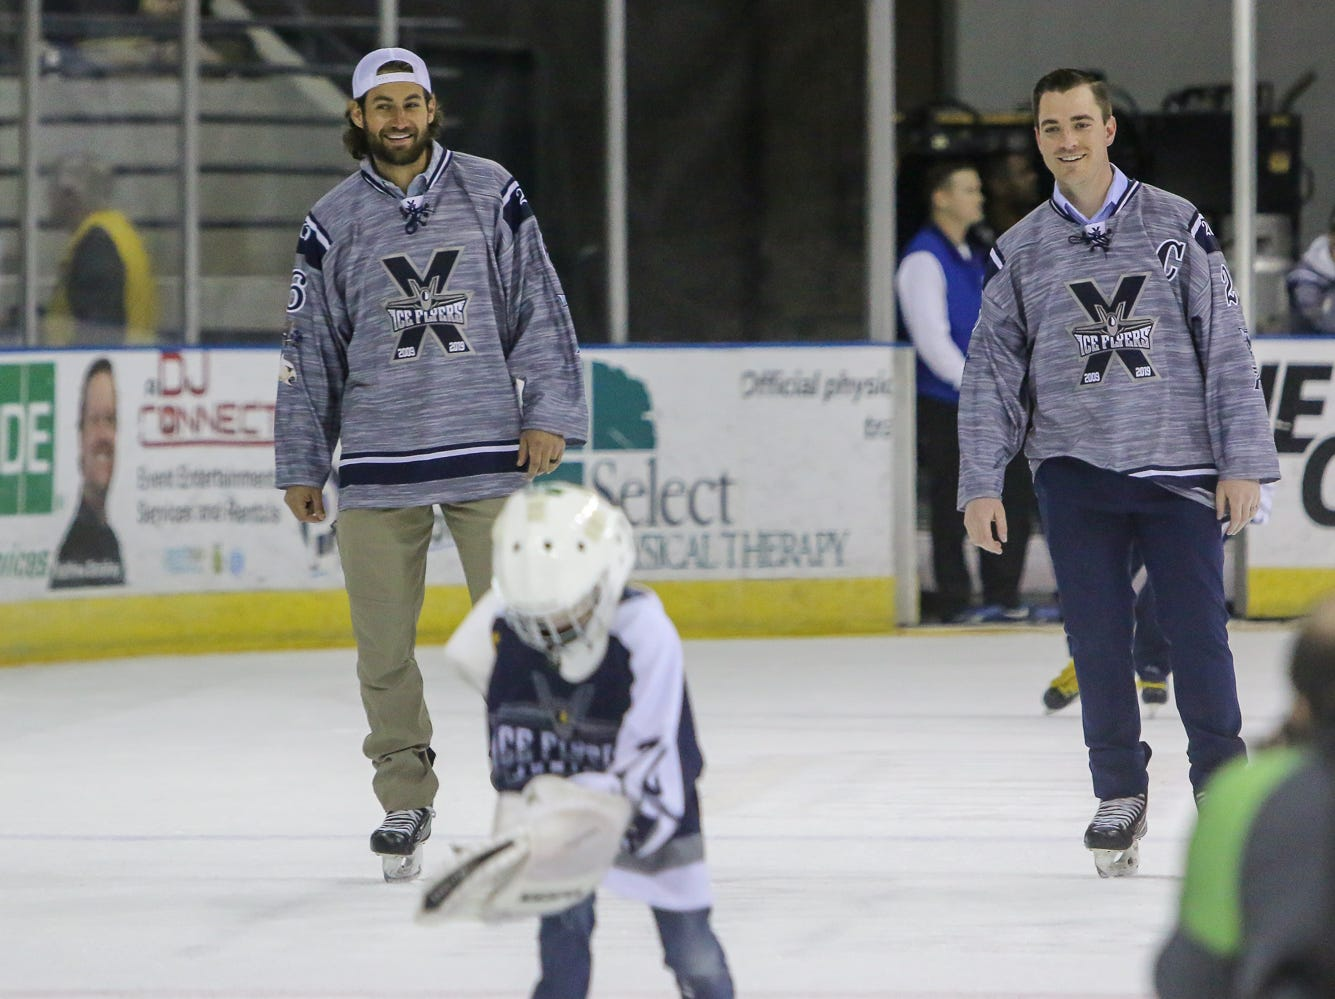 Former Ice Flyers players Drew Baker, left, and Adam Pawlick, right, skate around the ice during an intermission of the game against Macon at the Pensacola Bay Center on Saturday, March 23, 2019. They were among other former players and coaches recognized during the team's tenth anniversary weekend games last night and tonight.